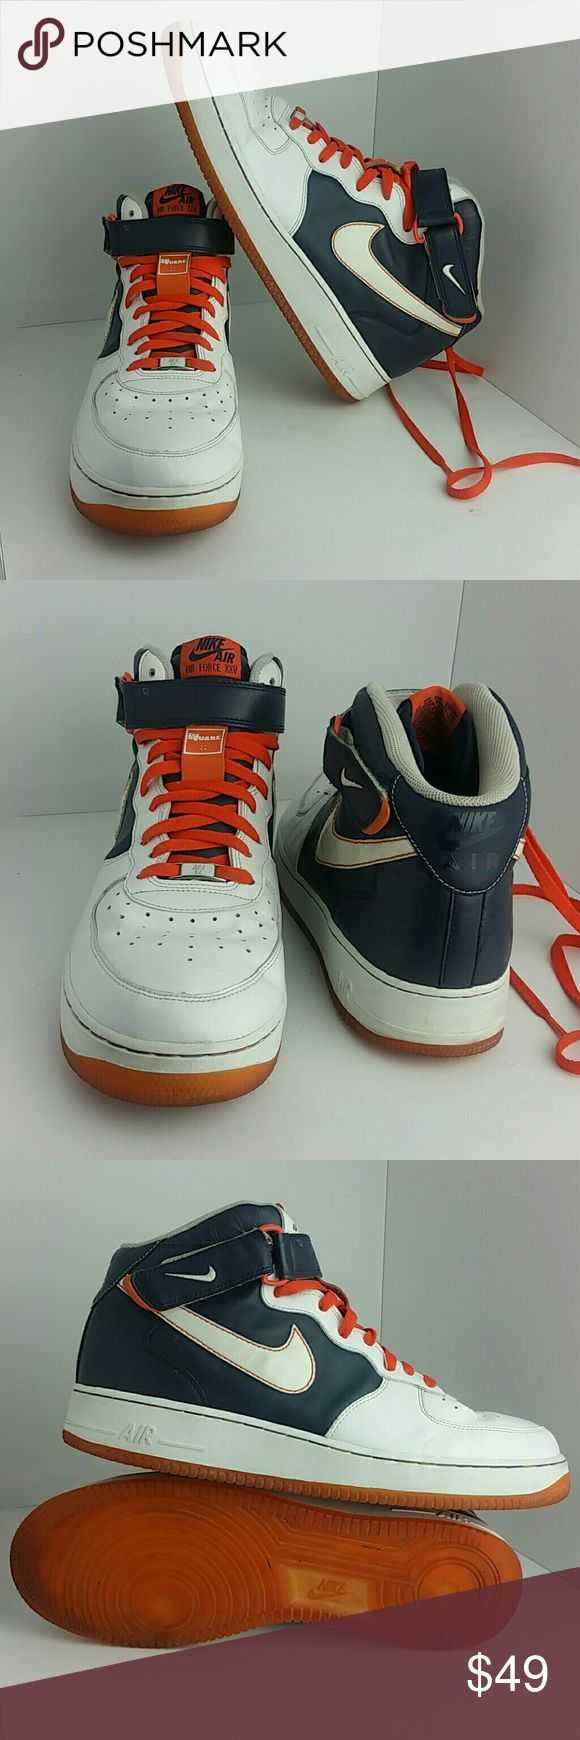 NIKE AIR FORCE 1 MID O7 MEN'S SHOES IN GOOD CONDITION   SKE # AB NIKE  Shoes Athletic Shoes